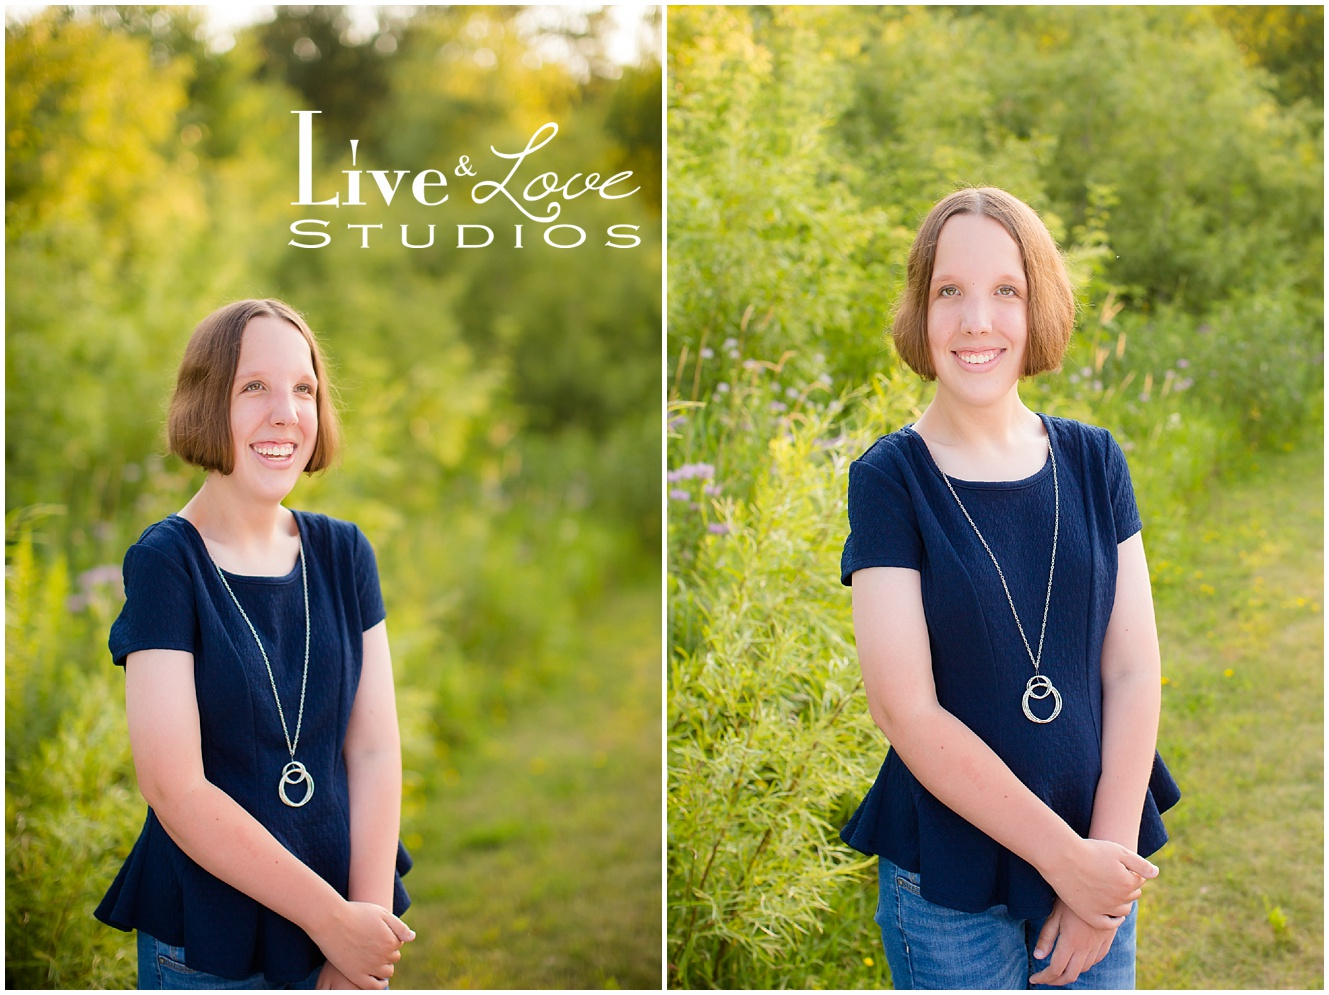 eagan-mn-high-school-senior-photographer_0148.jpg